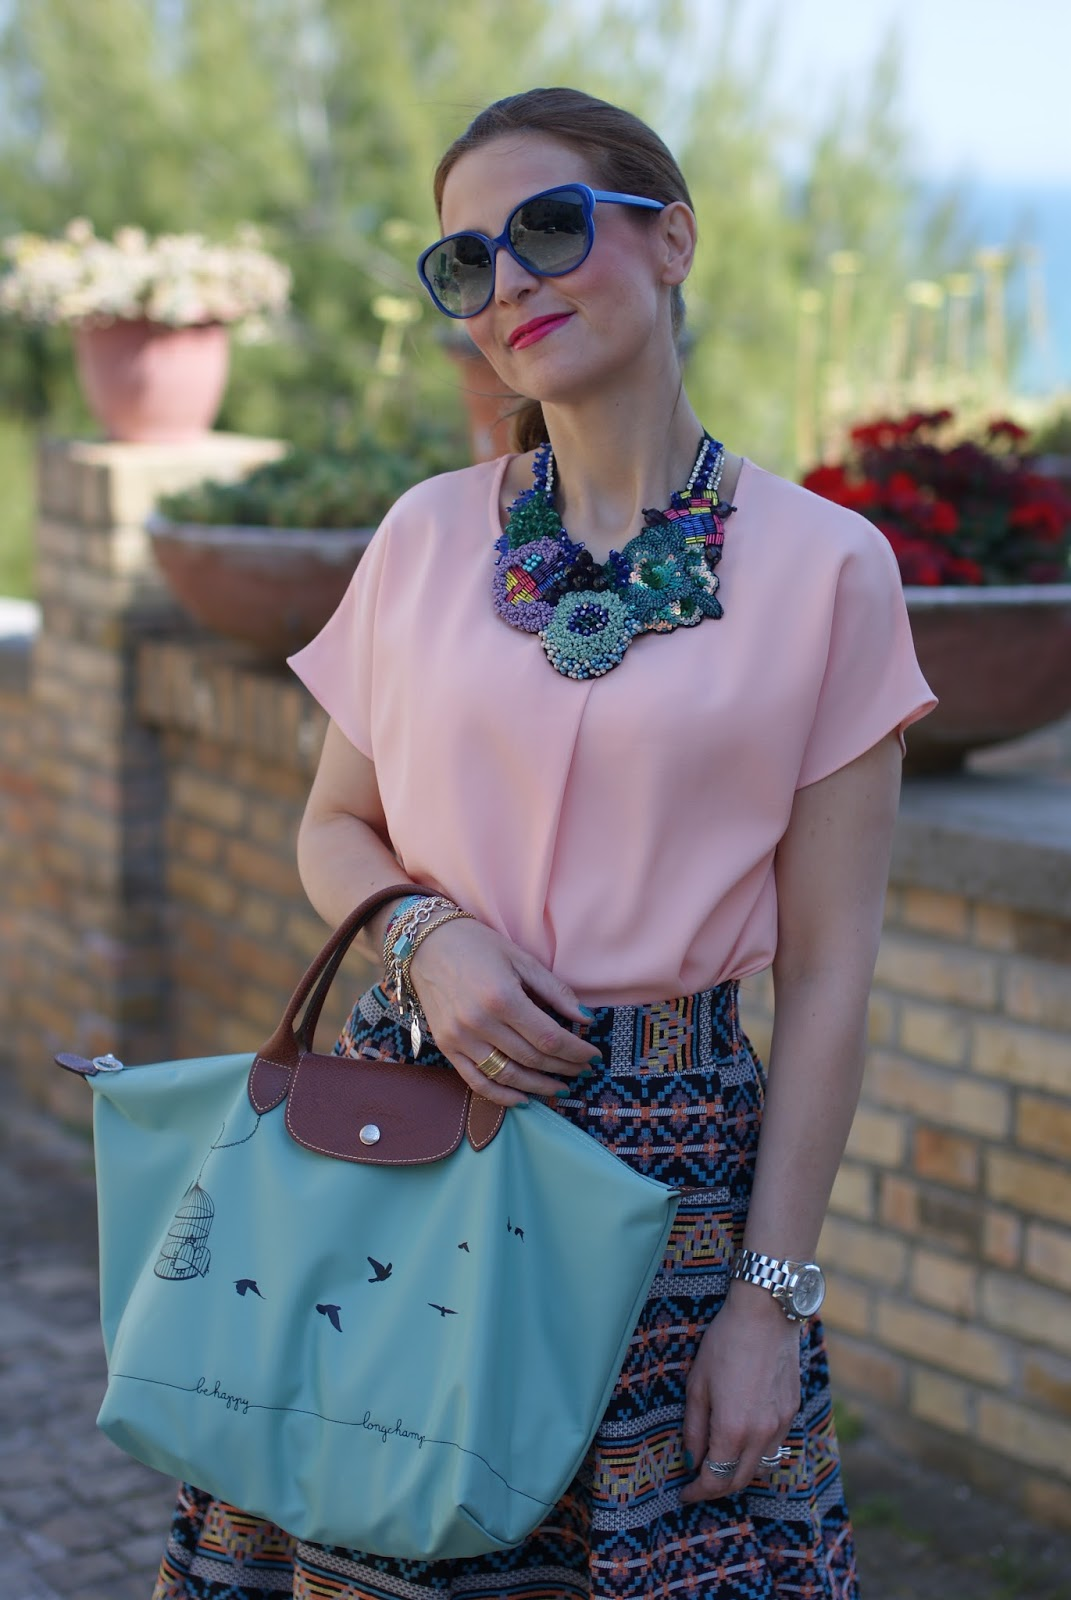 SimonaB Bijoux necklace, Le Pliage green bag, Fashion and Cookies fashion blog